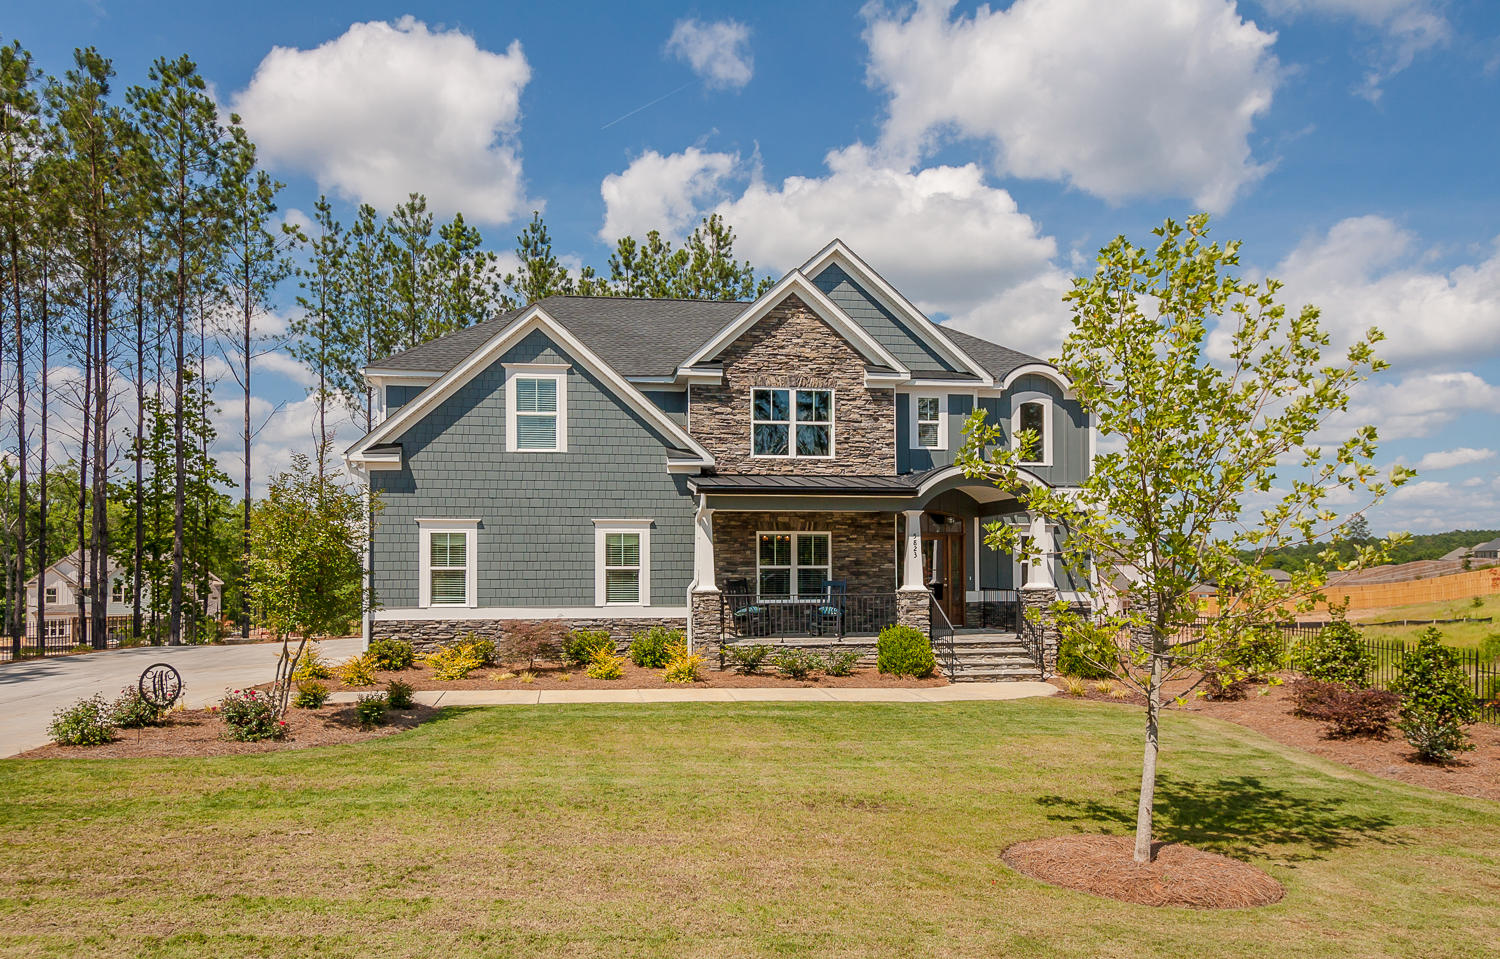 good canterbury farms #3: Front of Home - Photo: 1 of 80